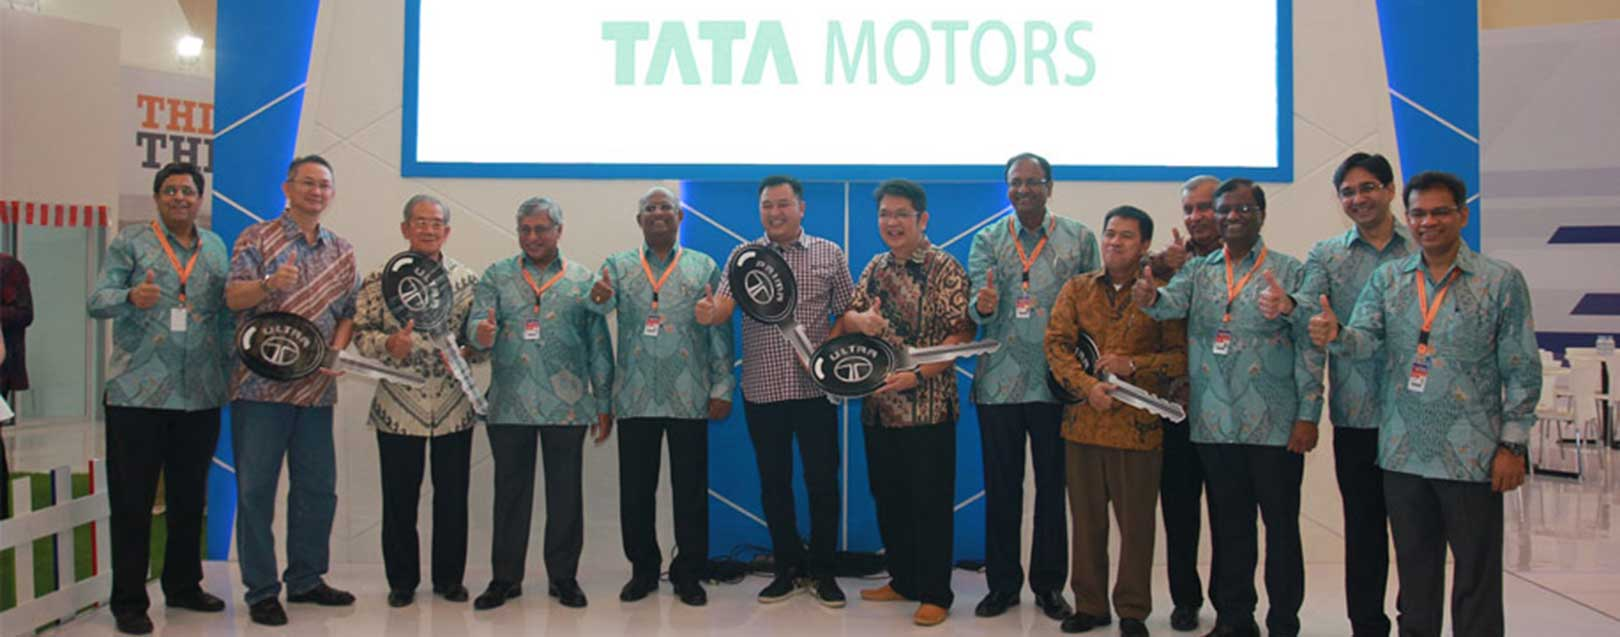 Tata Motors launches two new commercial vehicles in Indonesia